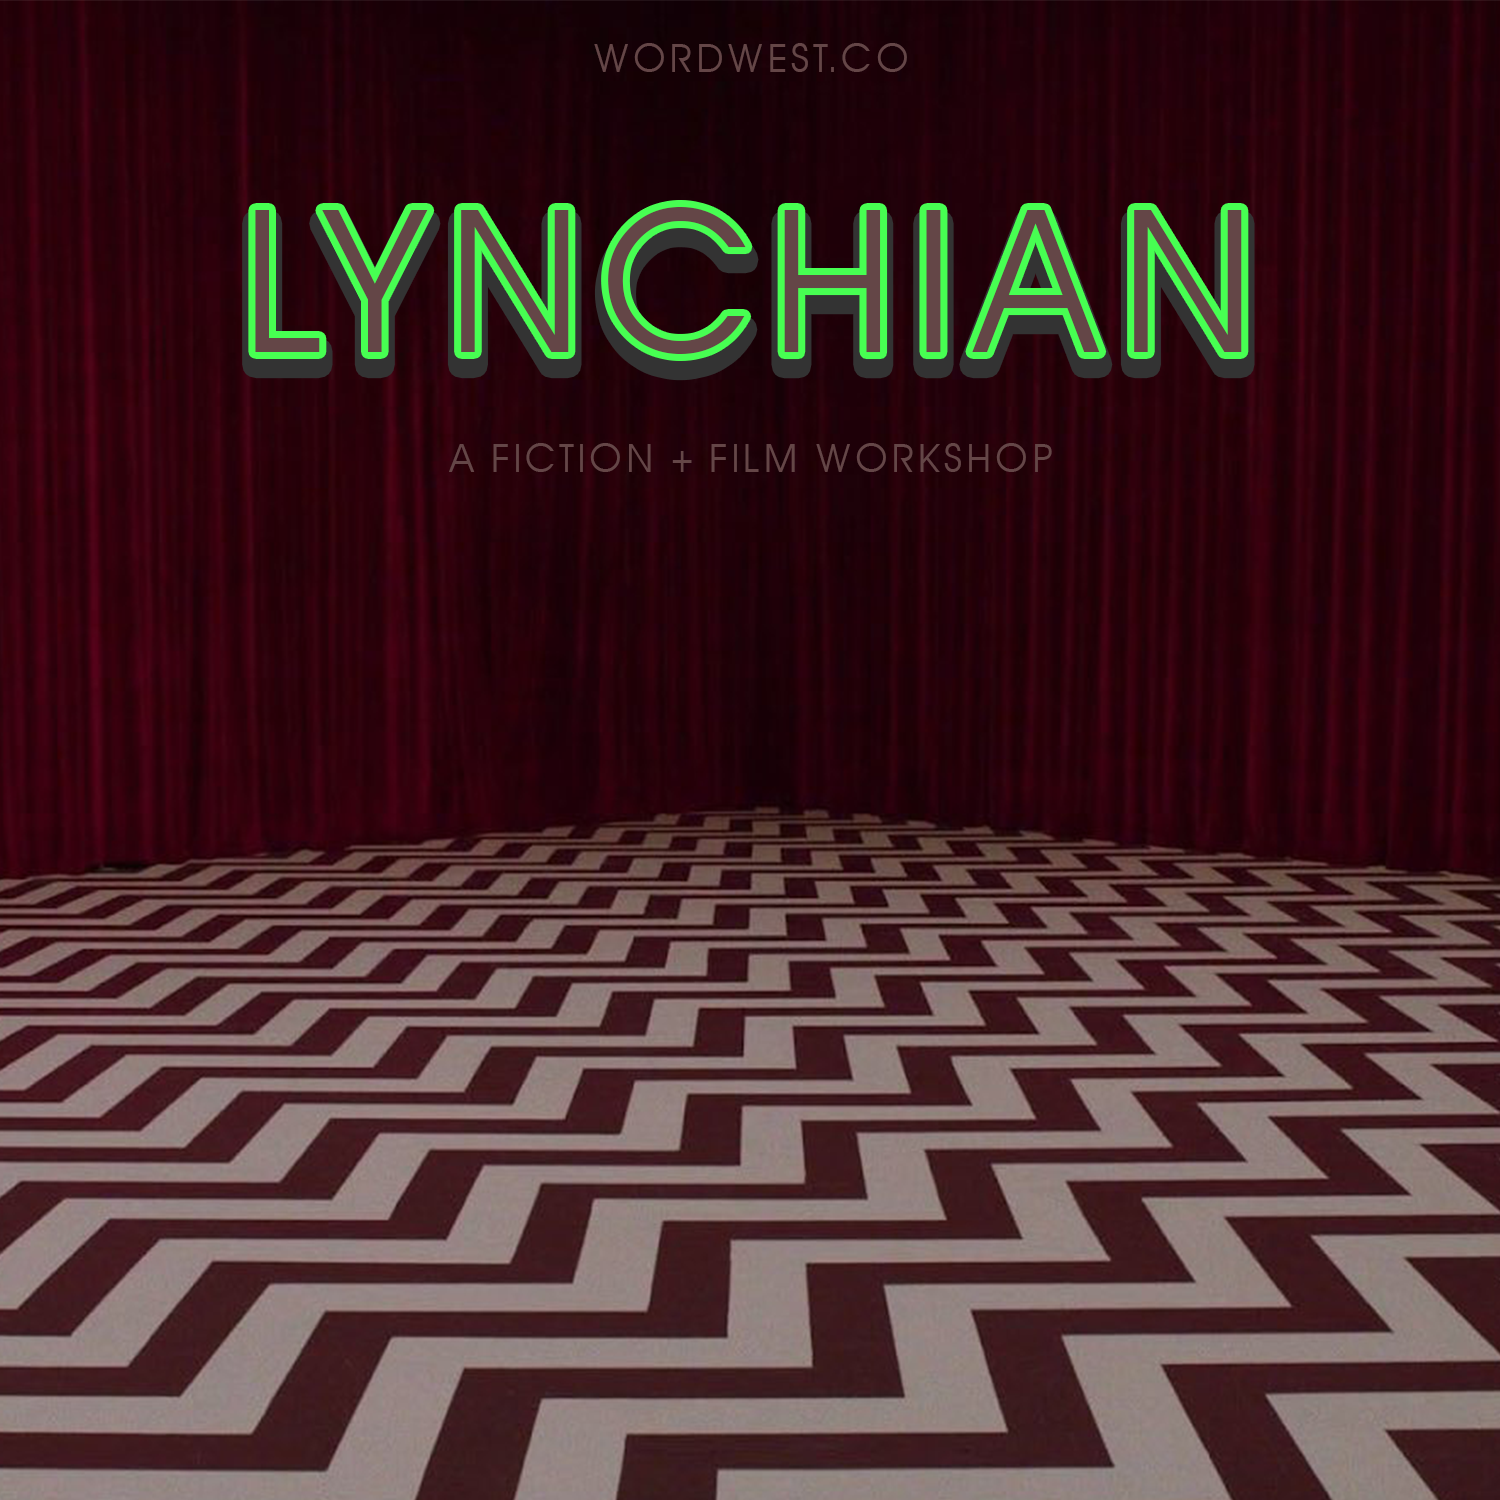 fiction + film workshop 1: lynchian